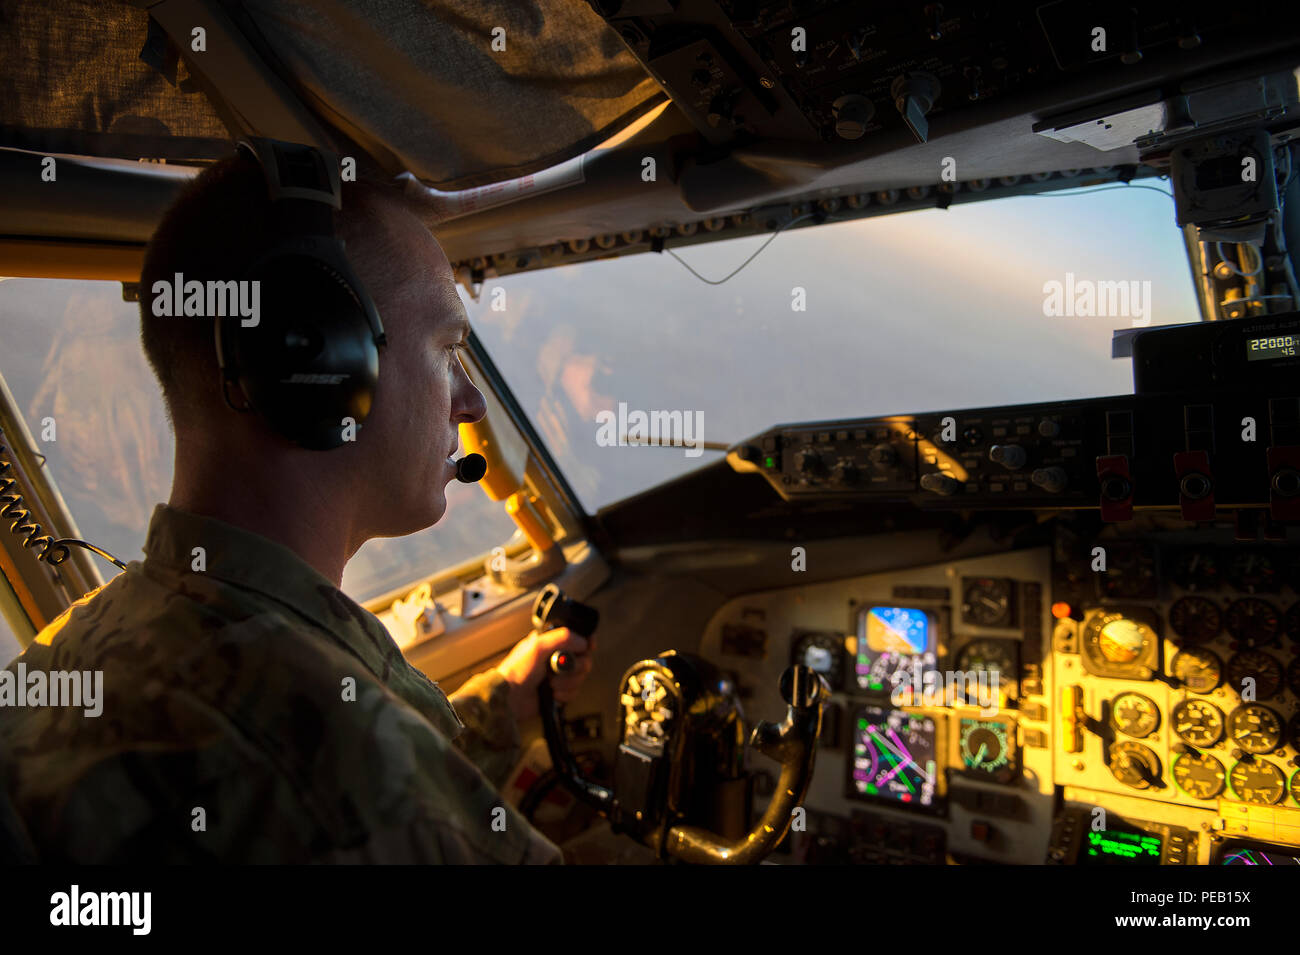 U.S. Air Force Capt. TJ Mahosky, 340th Expeditionary Air Refueling Squadron pilot, flies a KC-135 Stratotanker over Southwest Asia in support of Operation Inherent Resolve, Dec. 4, 2015. Capt. Mahosky is deployed from the 171st Air Refueling Wing in Pennsylvania. (U.S. Air Force photo by Tech. Sgt. Nathan Lipscomb) Stock Photo